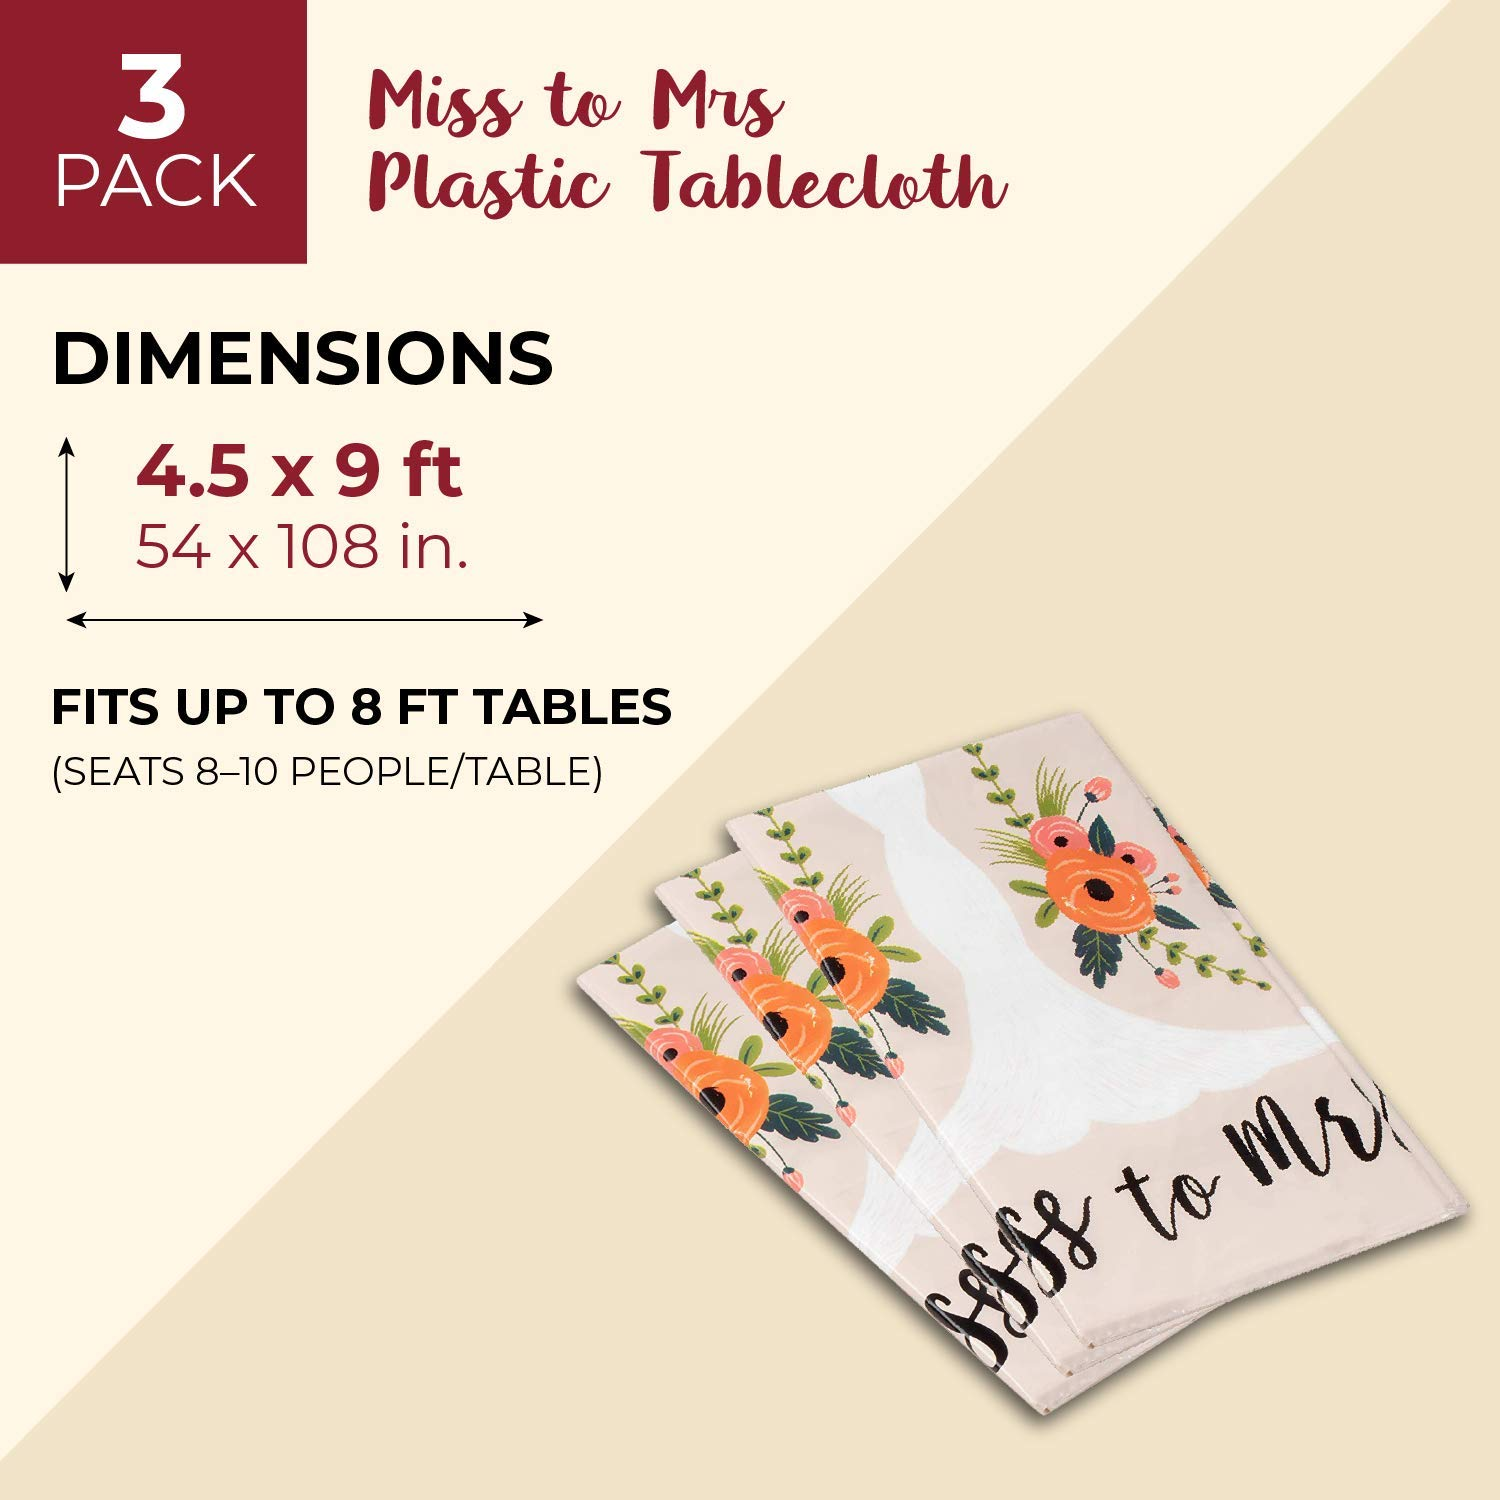 Bridal Wedding Shower Table Cover Party Supplies 54 x 108 Inches Juvale 3-Pack Miss to Mrs Plastic Tablecloth